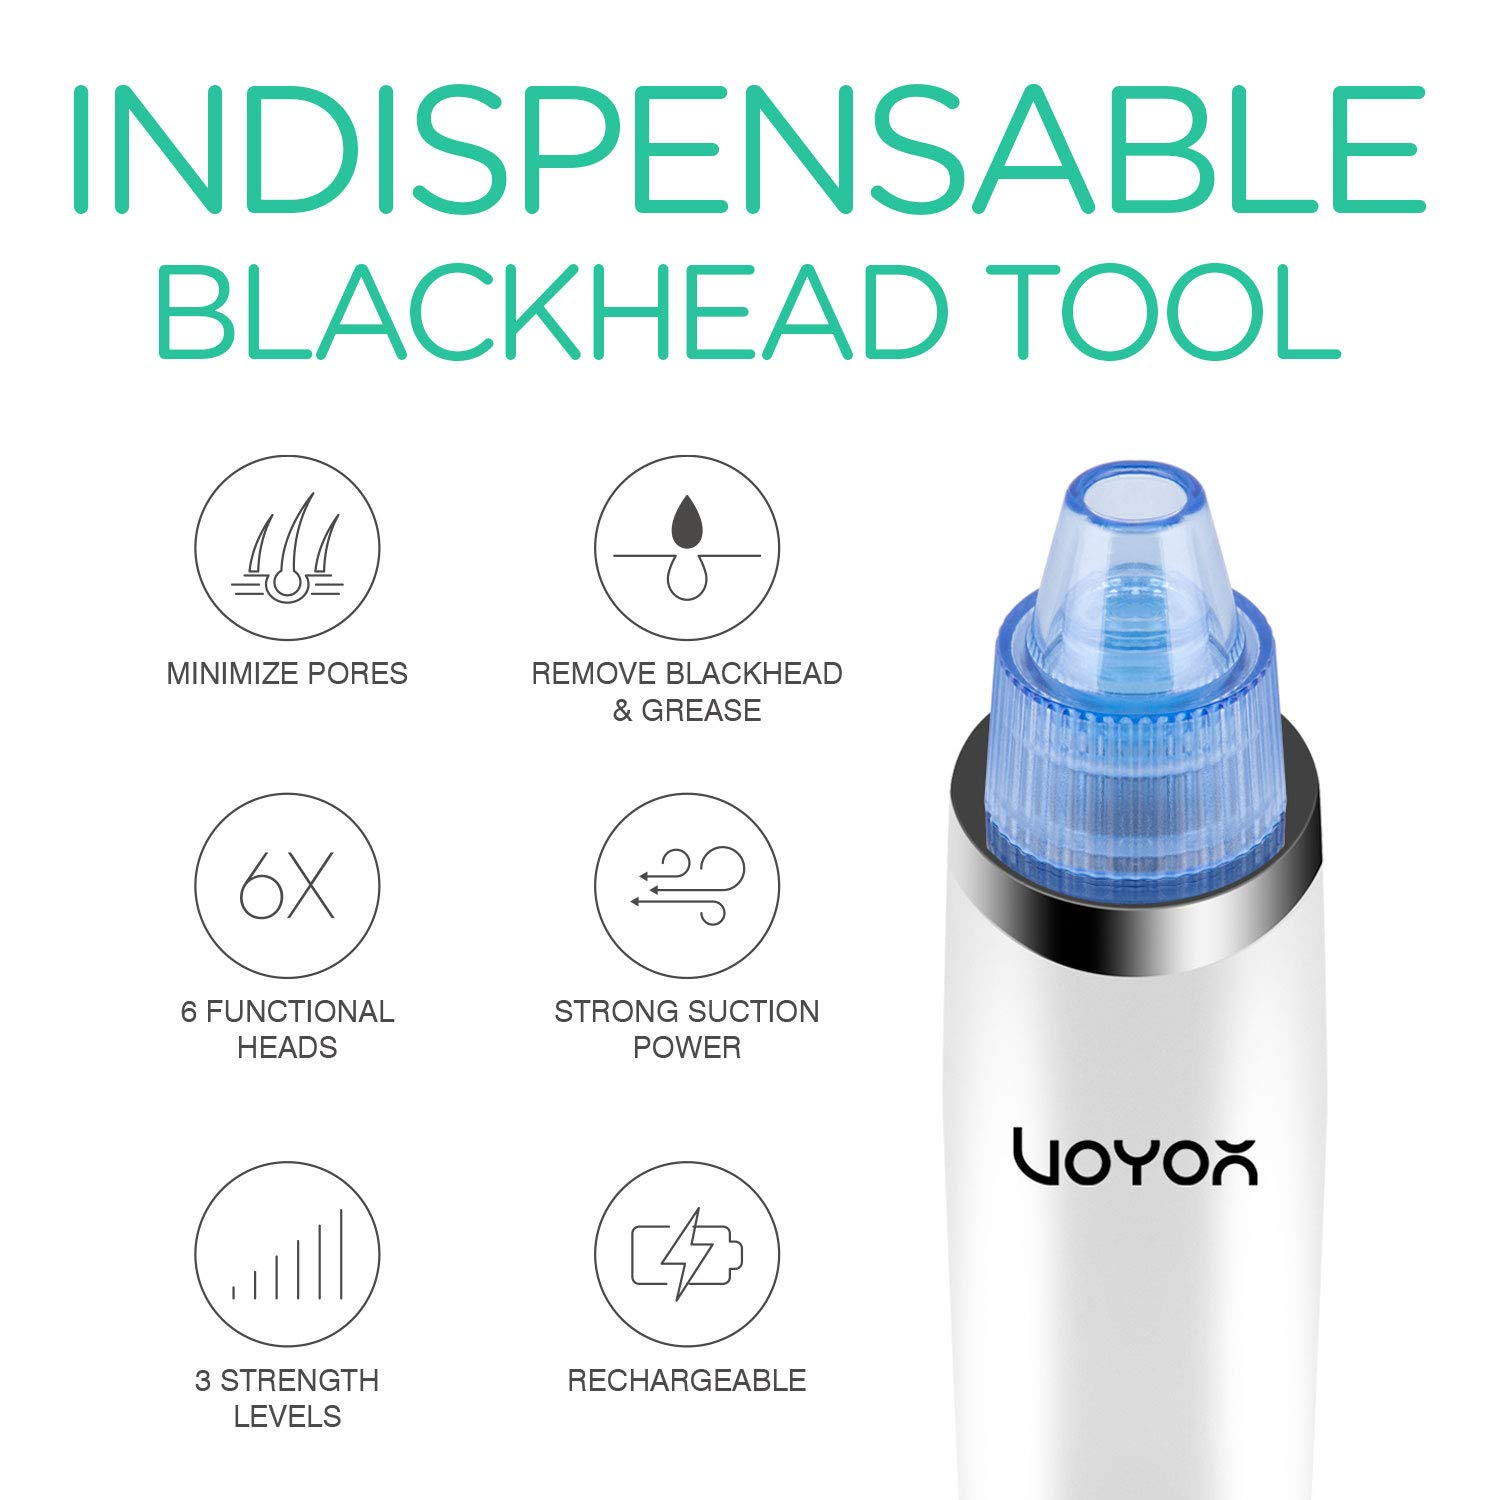 VOYOR Blackhead Remover Vacuum Suction Facial Pore Cleaner Electric Acne Comedone Extractor Kit with 6 Suction Head for Women and Men Black Heads Extraction BR410: Beauty